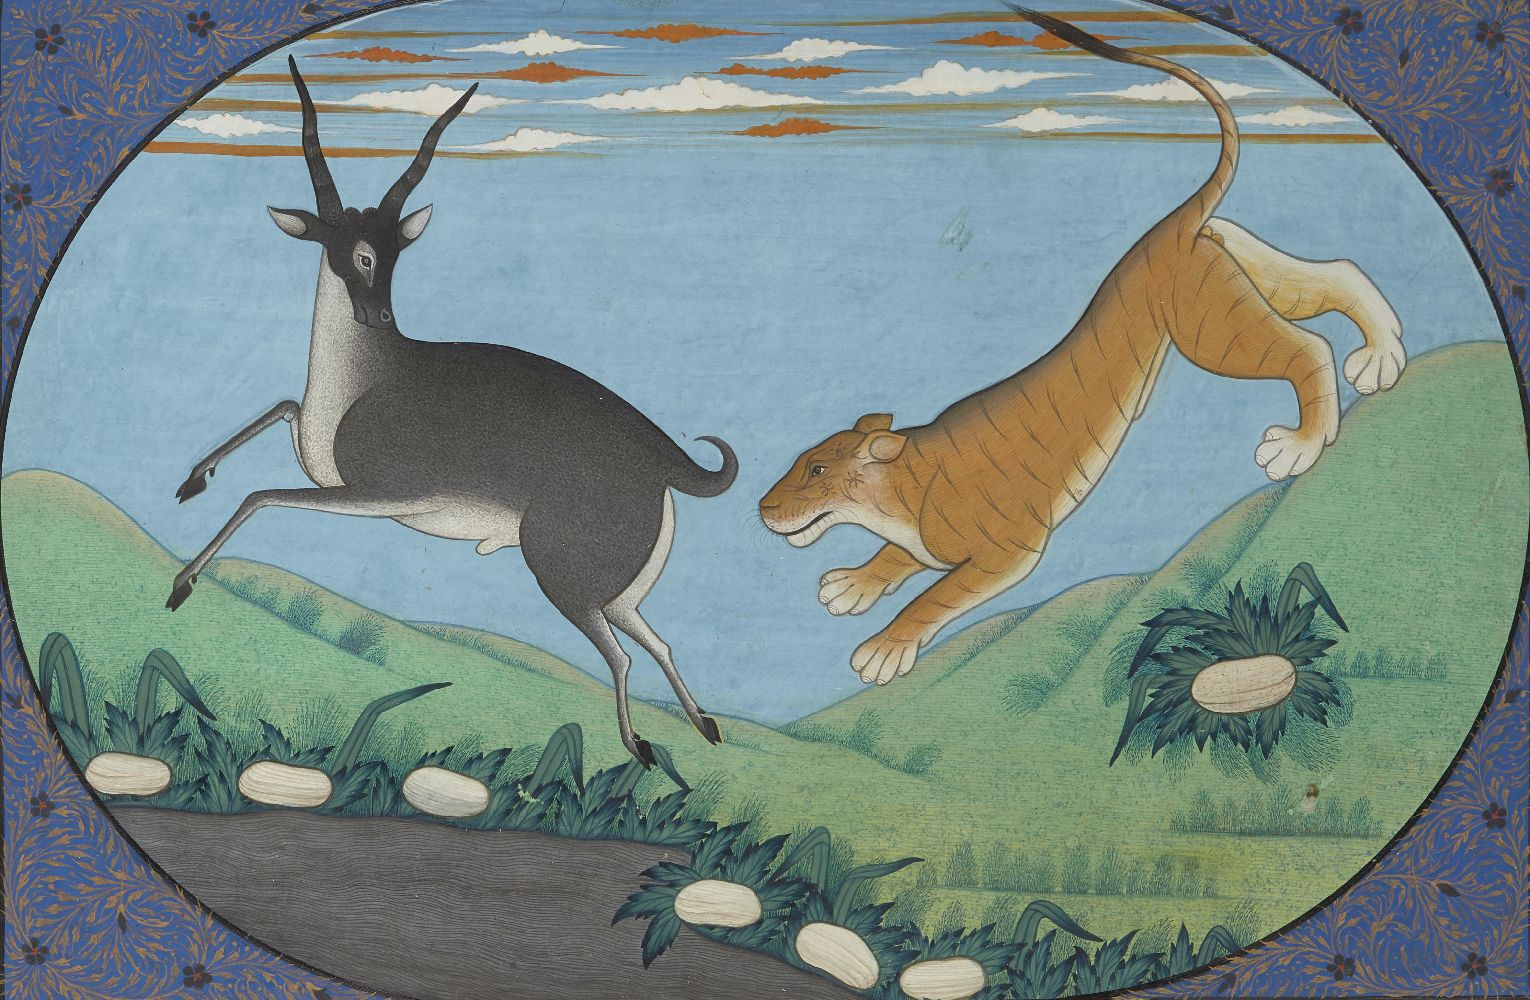 A tiger hunting an antelope, Kangra, Punjab Hills, 20th century, opaque pigments on paper, within an